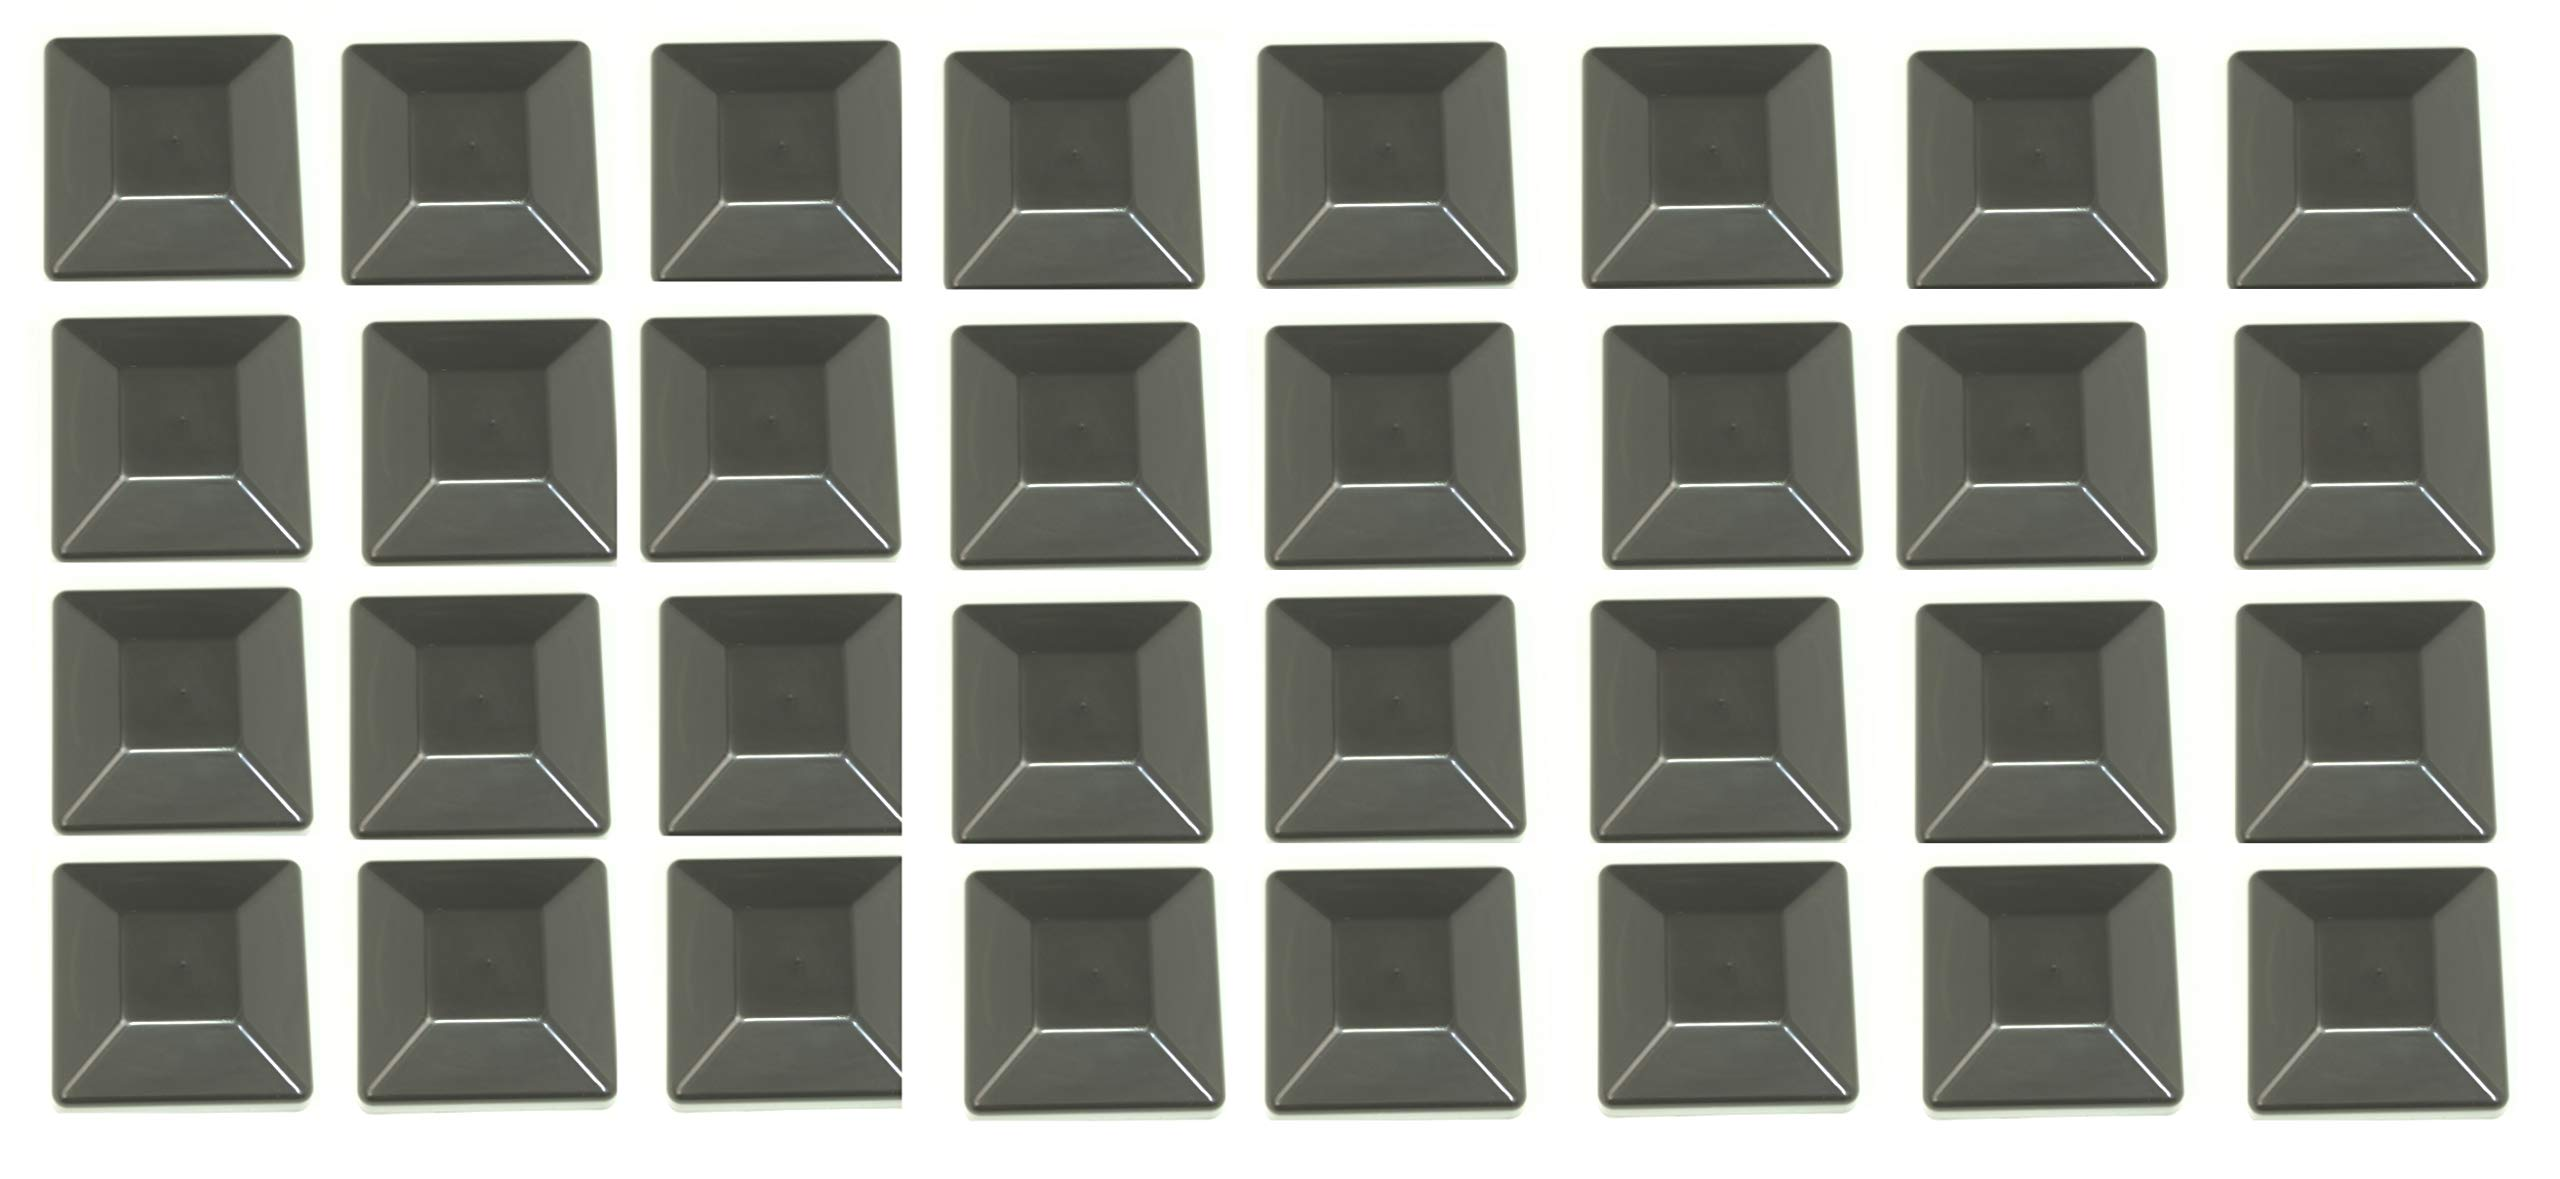 Plastic New Fence Post Black Caps 4X4 (3 5/8'') Pressure Treated Wood Made in USA (32 Pack) by JSP Manufacturing